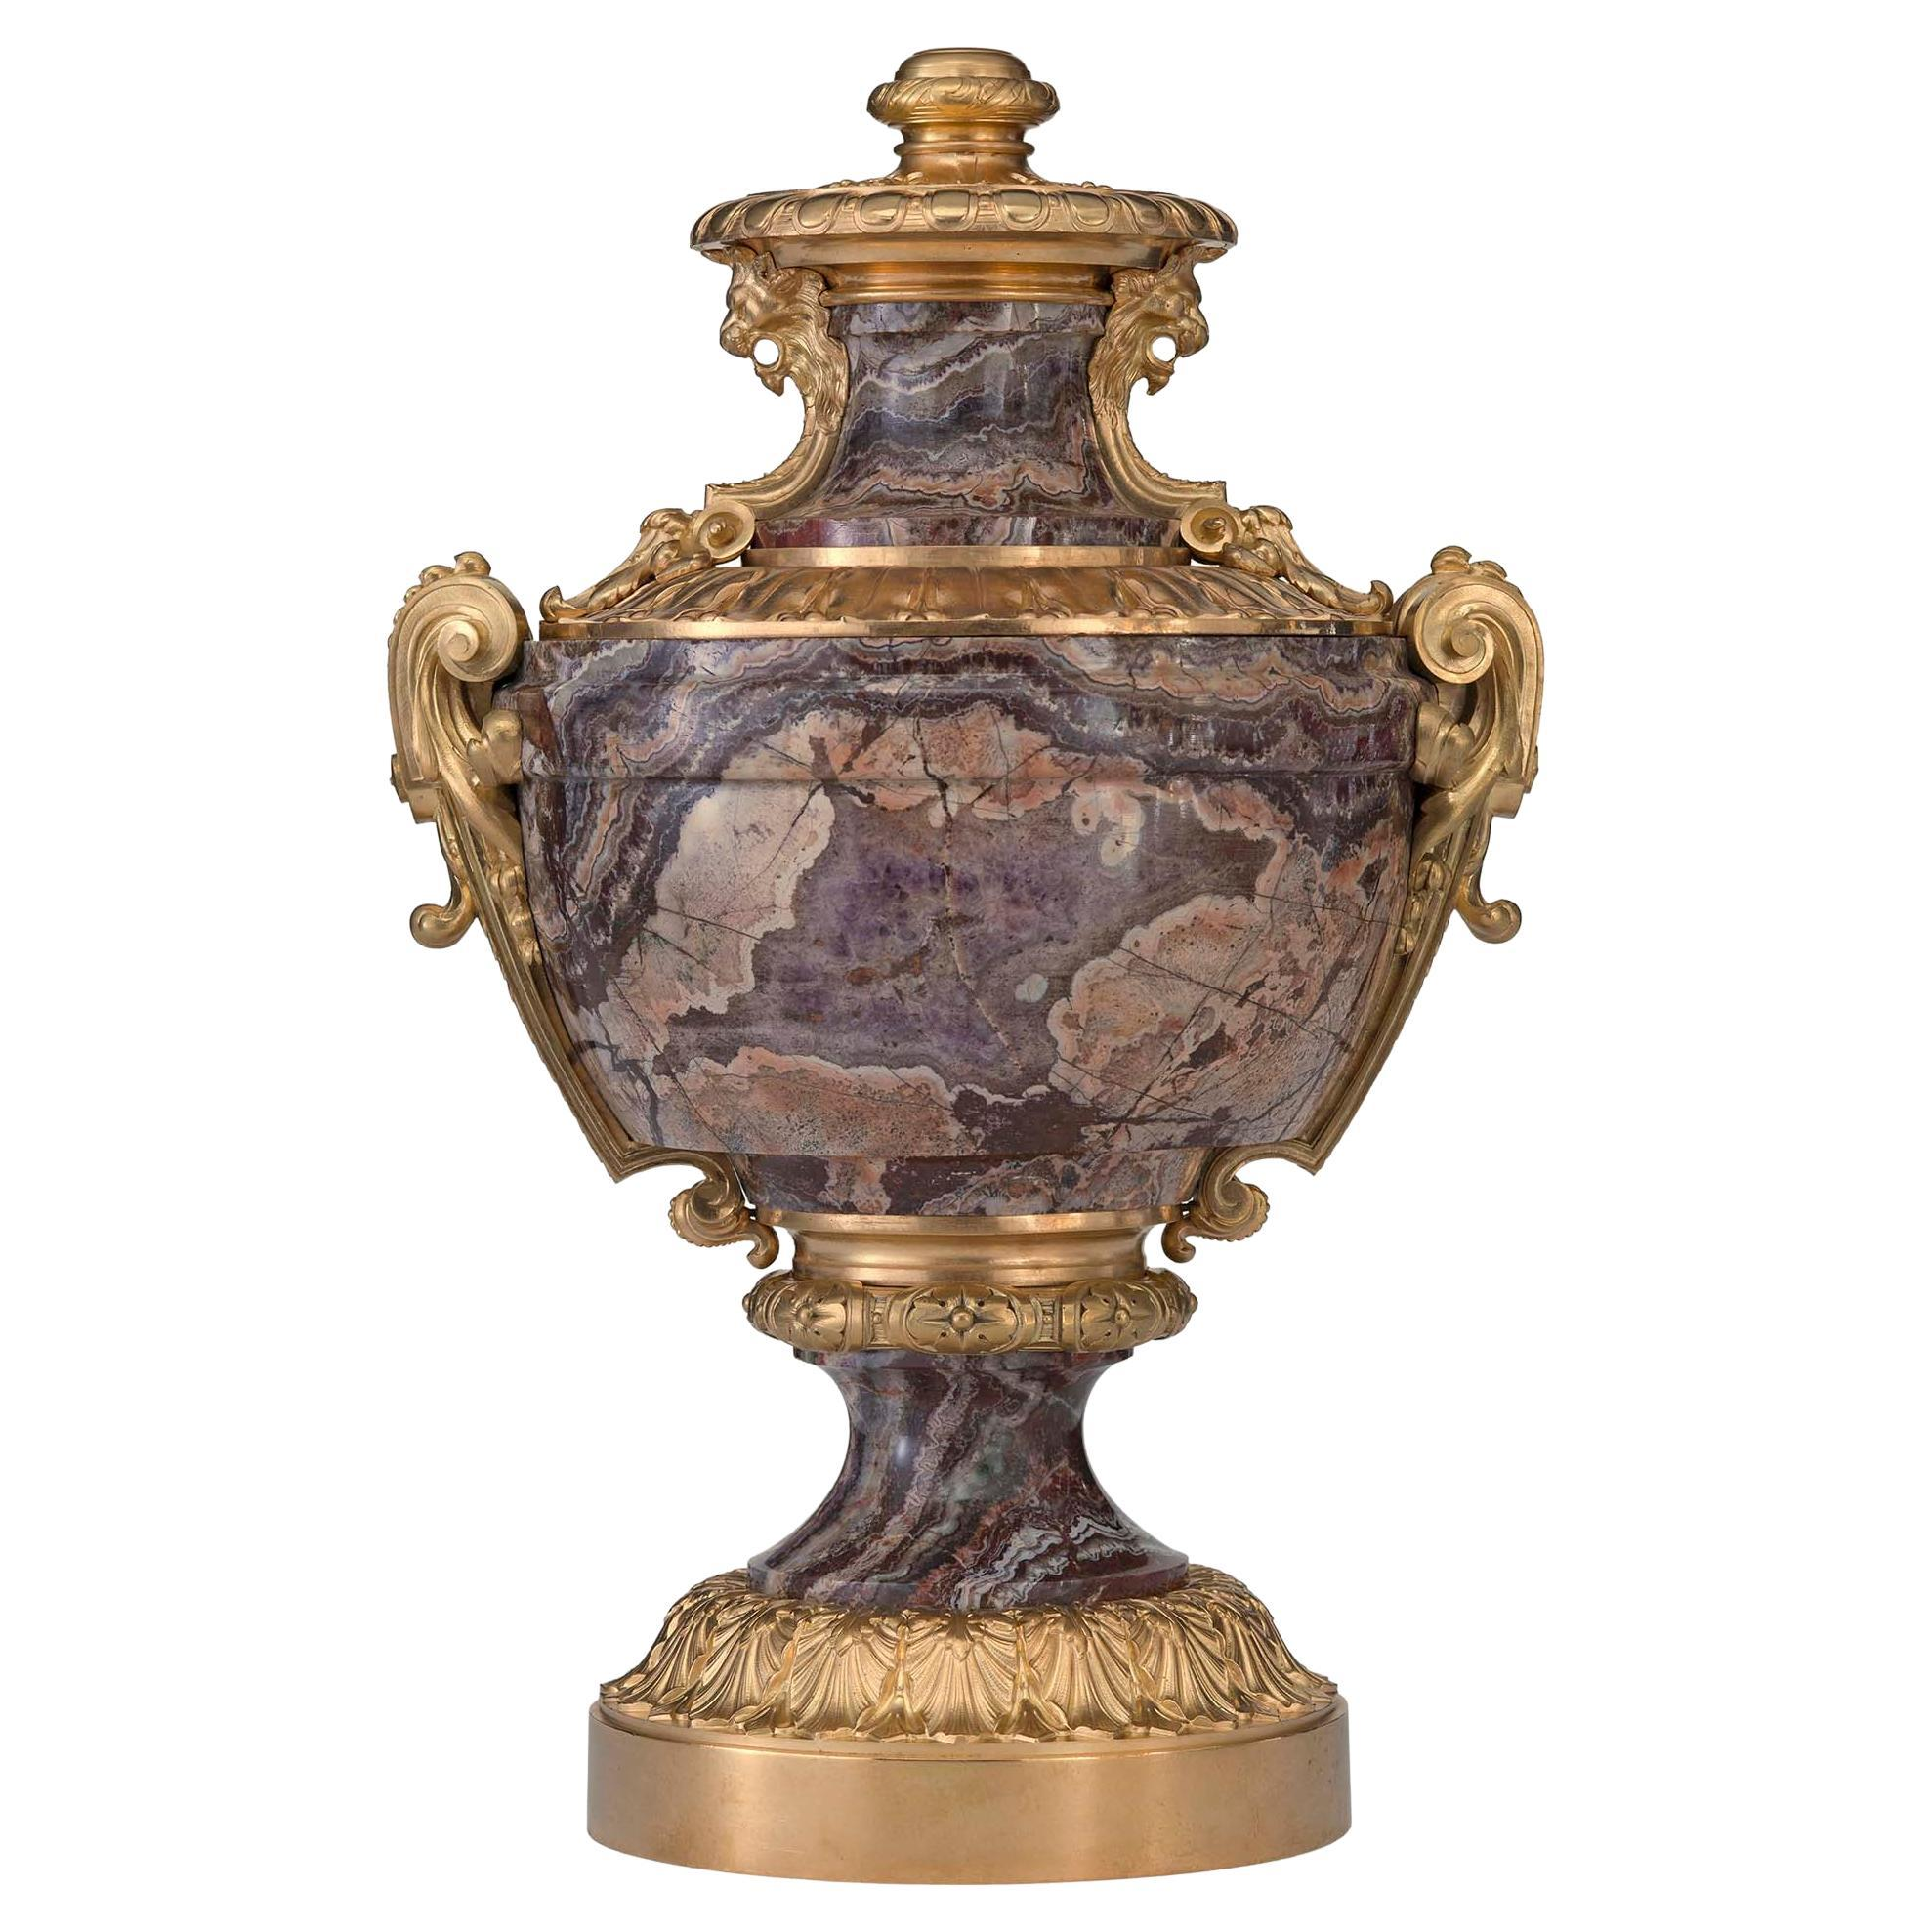 French 19th Century Louis XVI St. Marble and Ormolu Lidded Urn